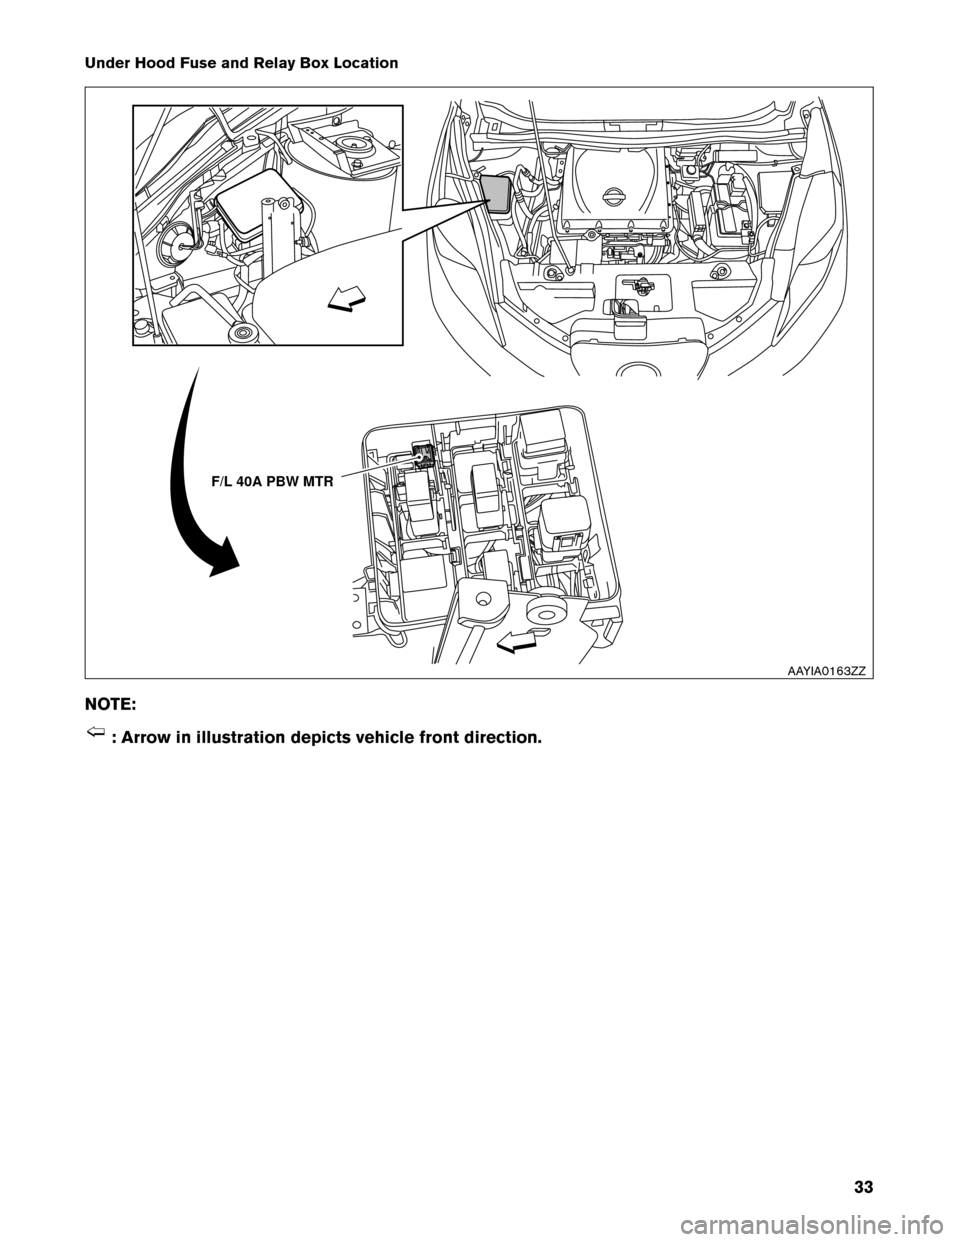 NISSAN LEAF 2013 1.G Dismantling Guide Under Hood Fuse and Relay Box Location NO TE: : Arrow in illustration depicts vehicle front direction. F/L 40A PBW MTR AAYIA0163ZZ 33